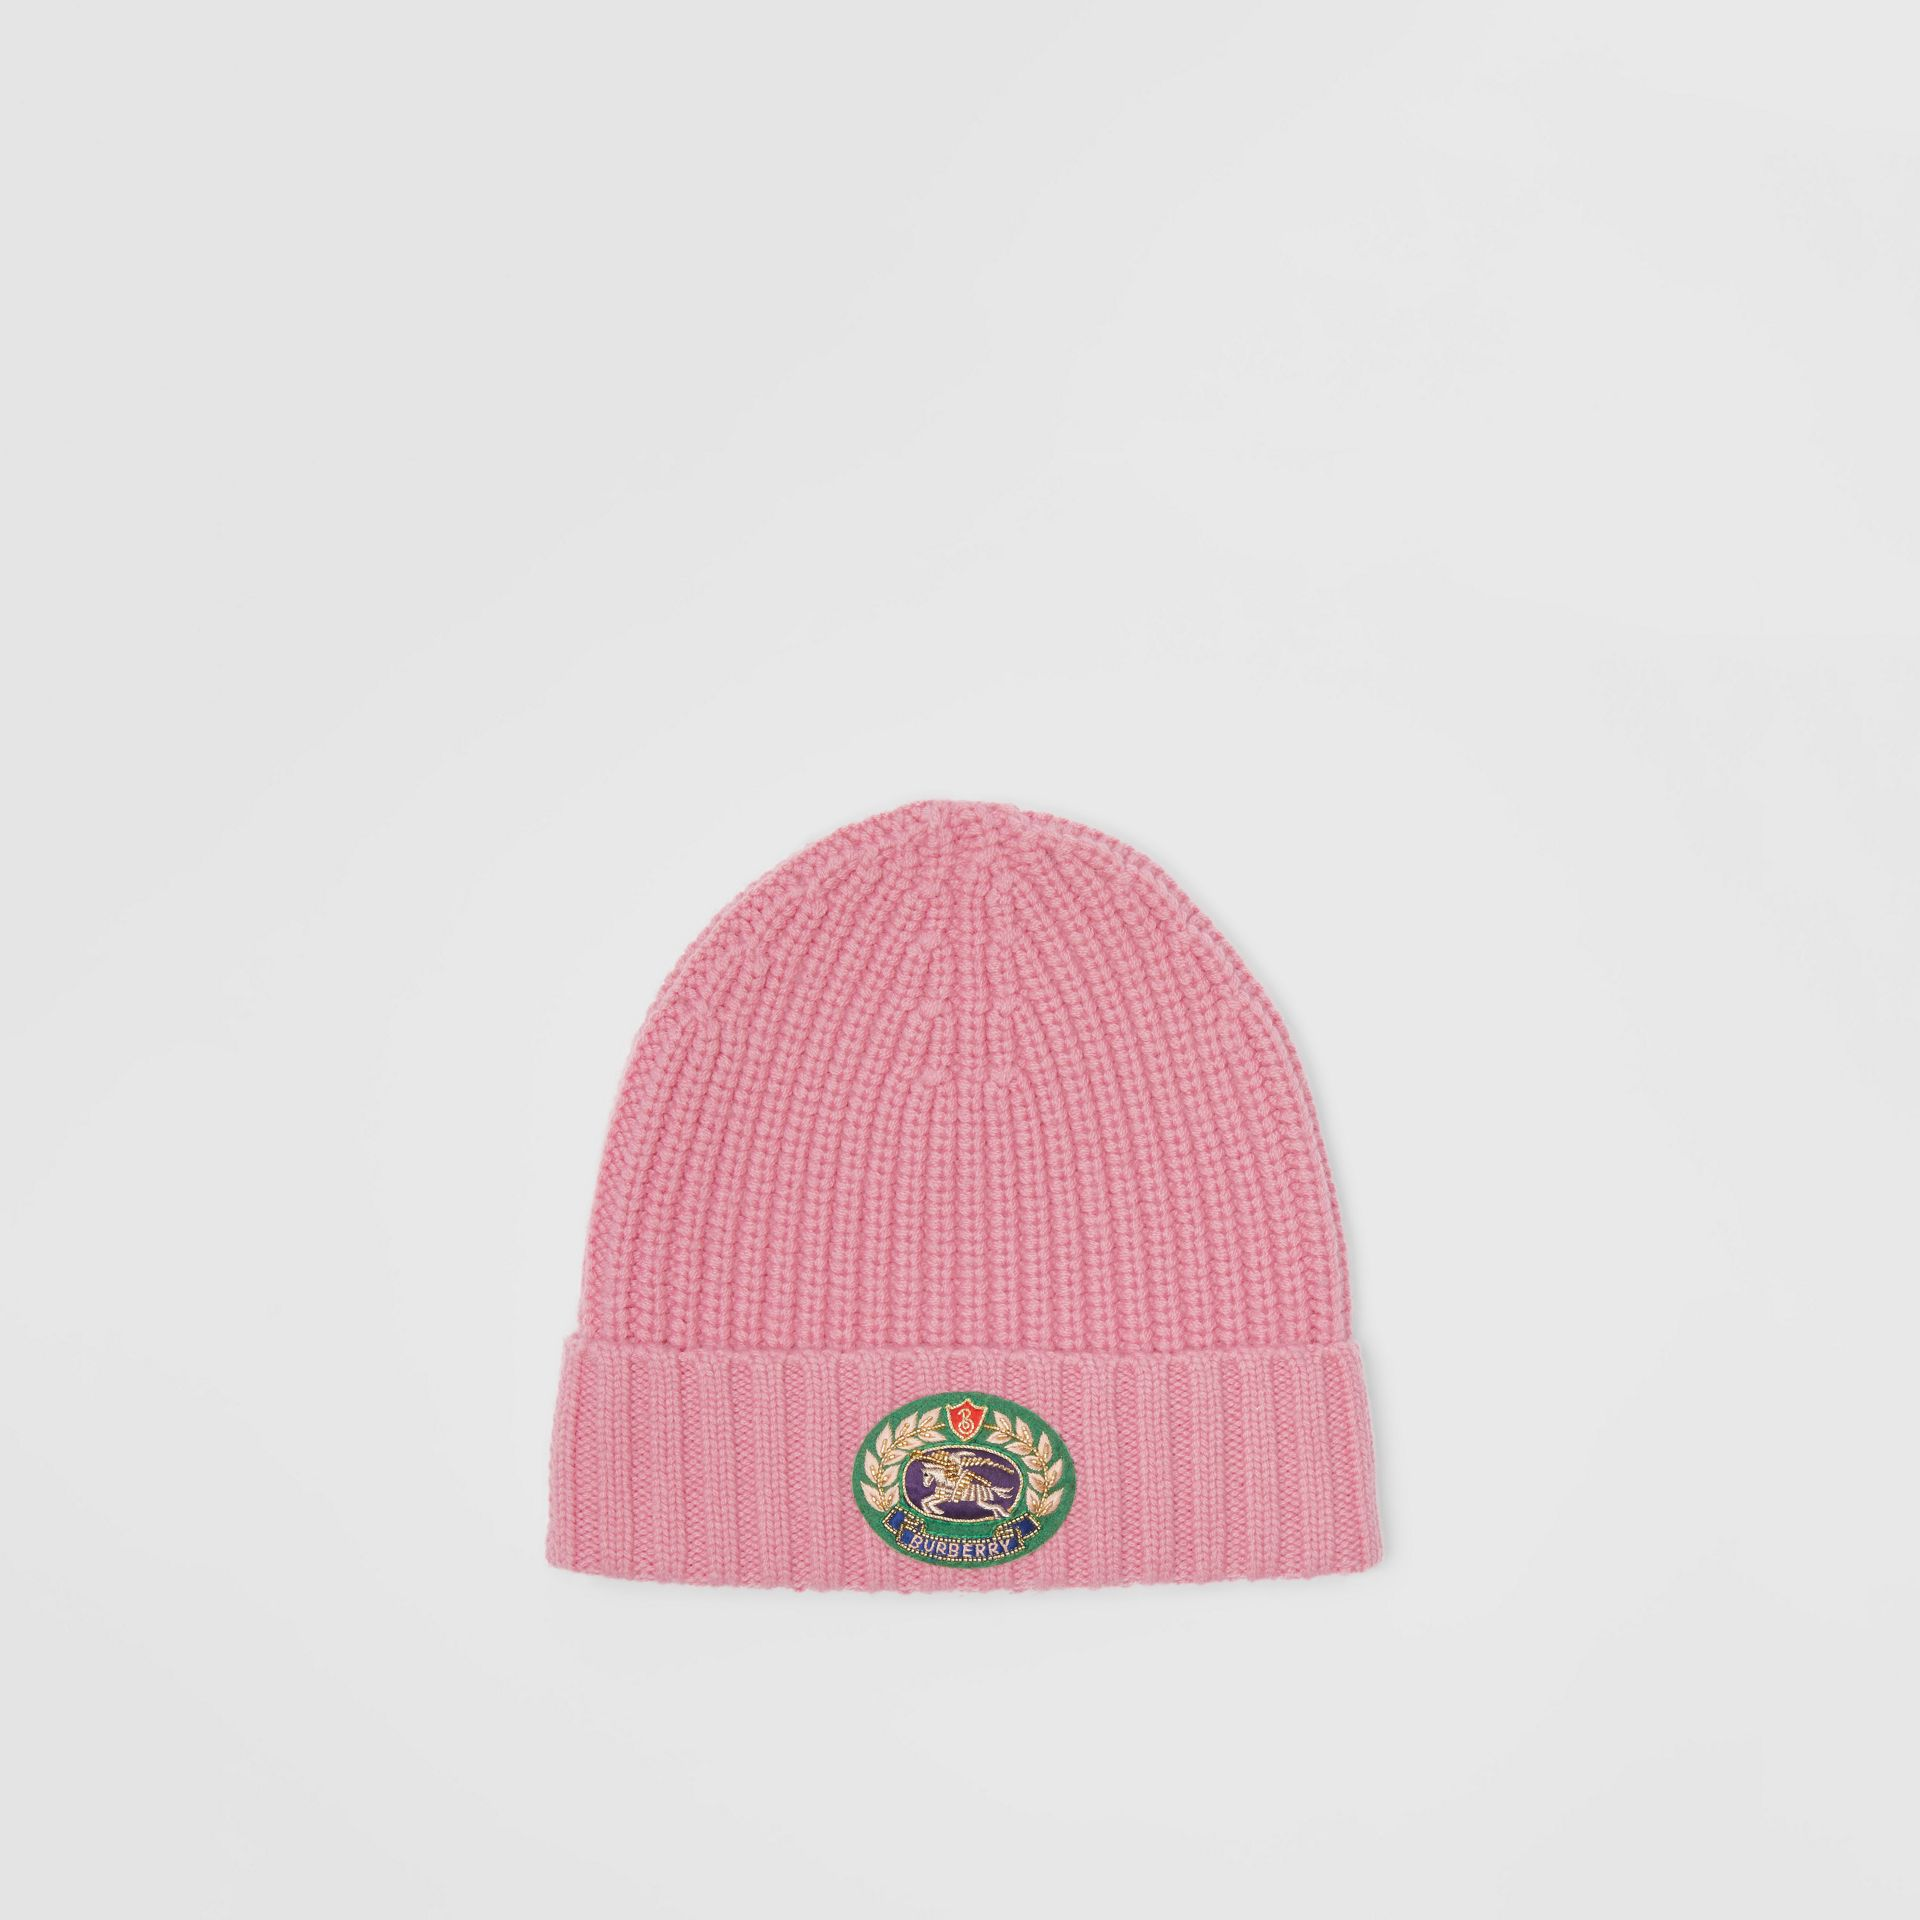 Embroidered Crest Rib Knit Wool Cashmere Beanie in Rose Pink | Burberry Hong Kong - gallery image 0